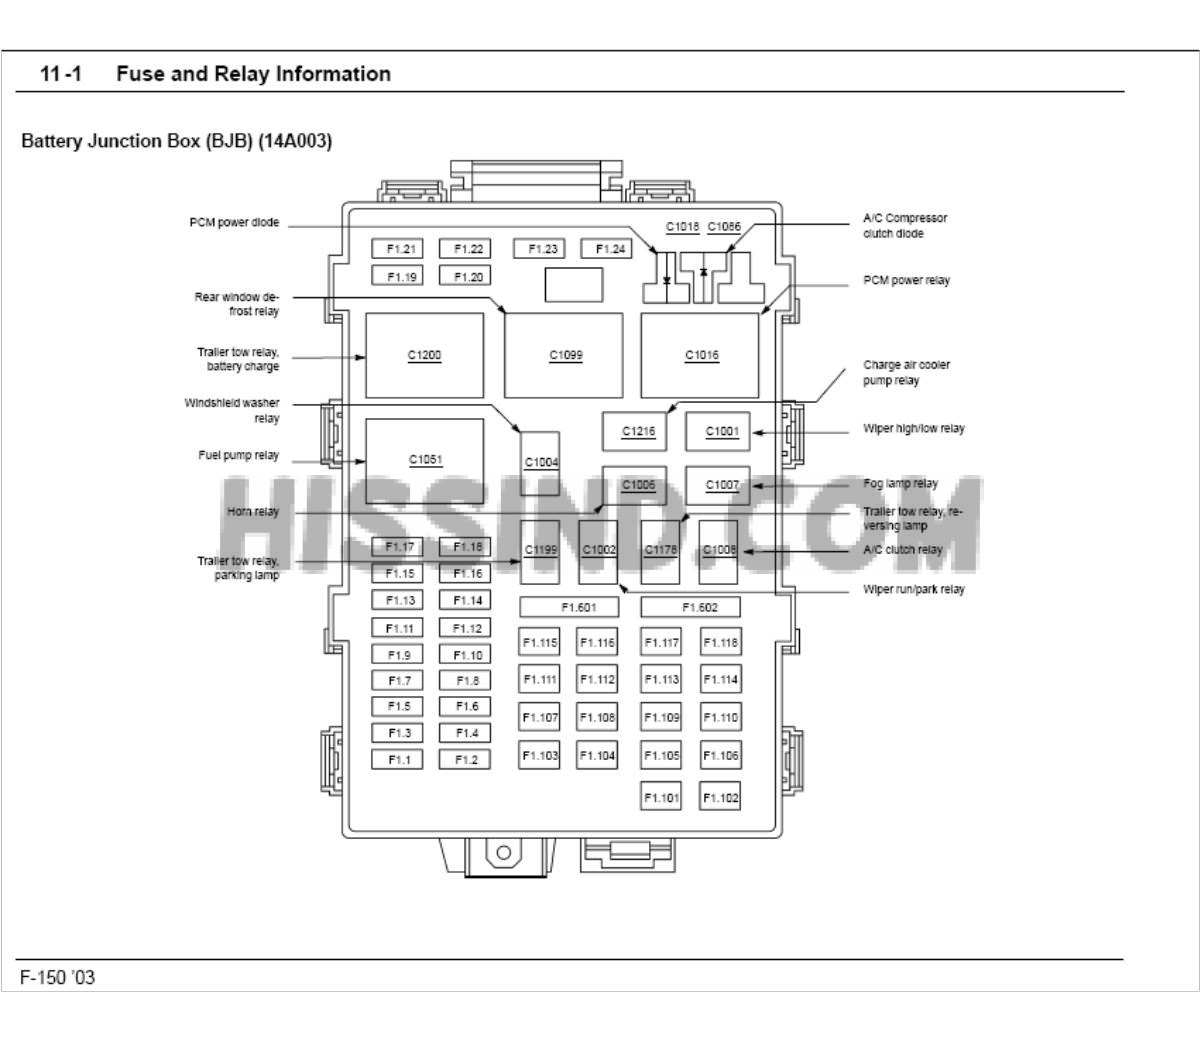 06 Ford E 150 Fuse Box Diagram Under Dash